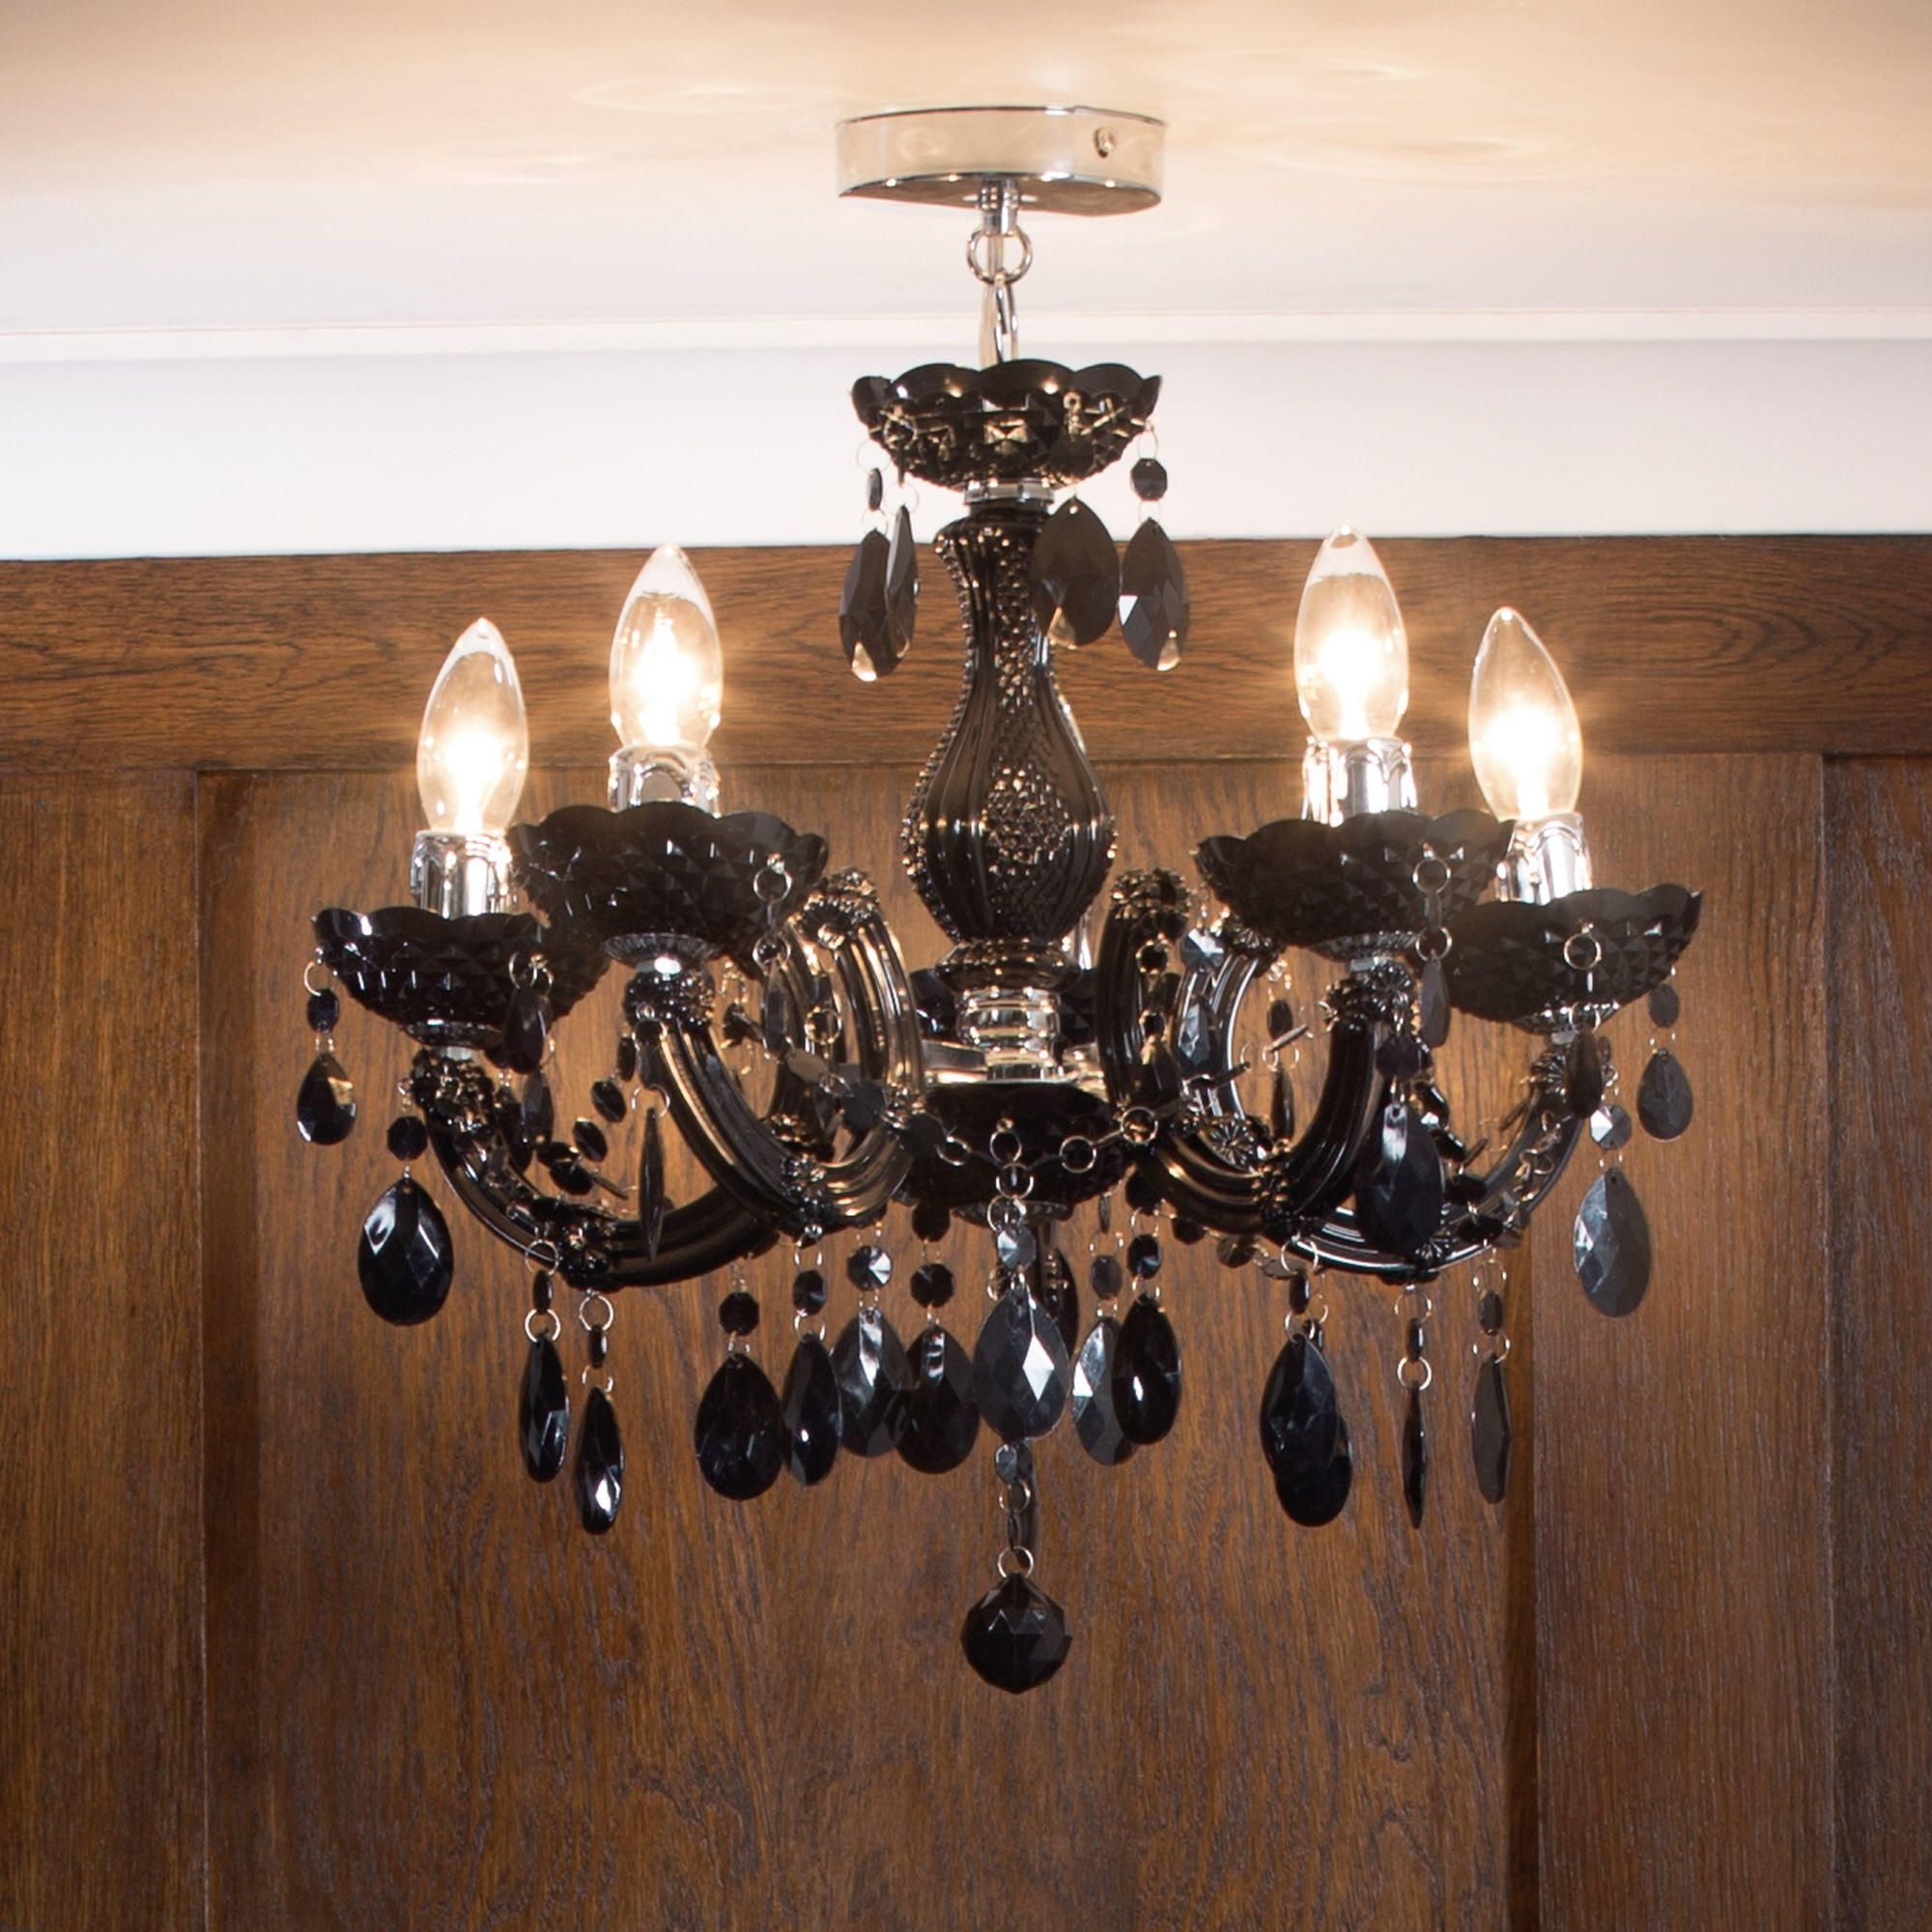 Current Low Ceiling Chandeliers With Regard To Capricious Chandelier For Low Ceiling Best 25 Lighting Ideas On (View 9 of 15)